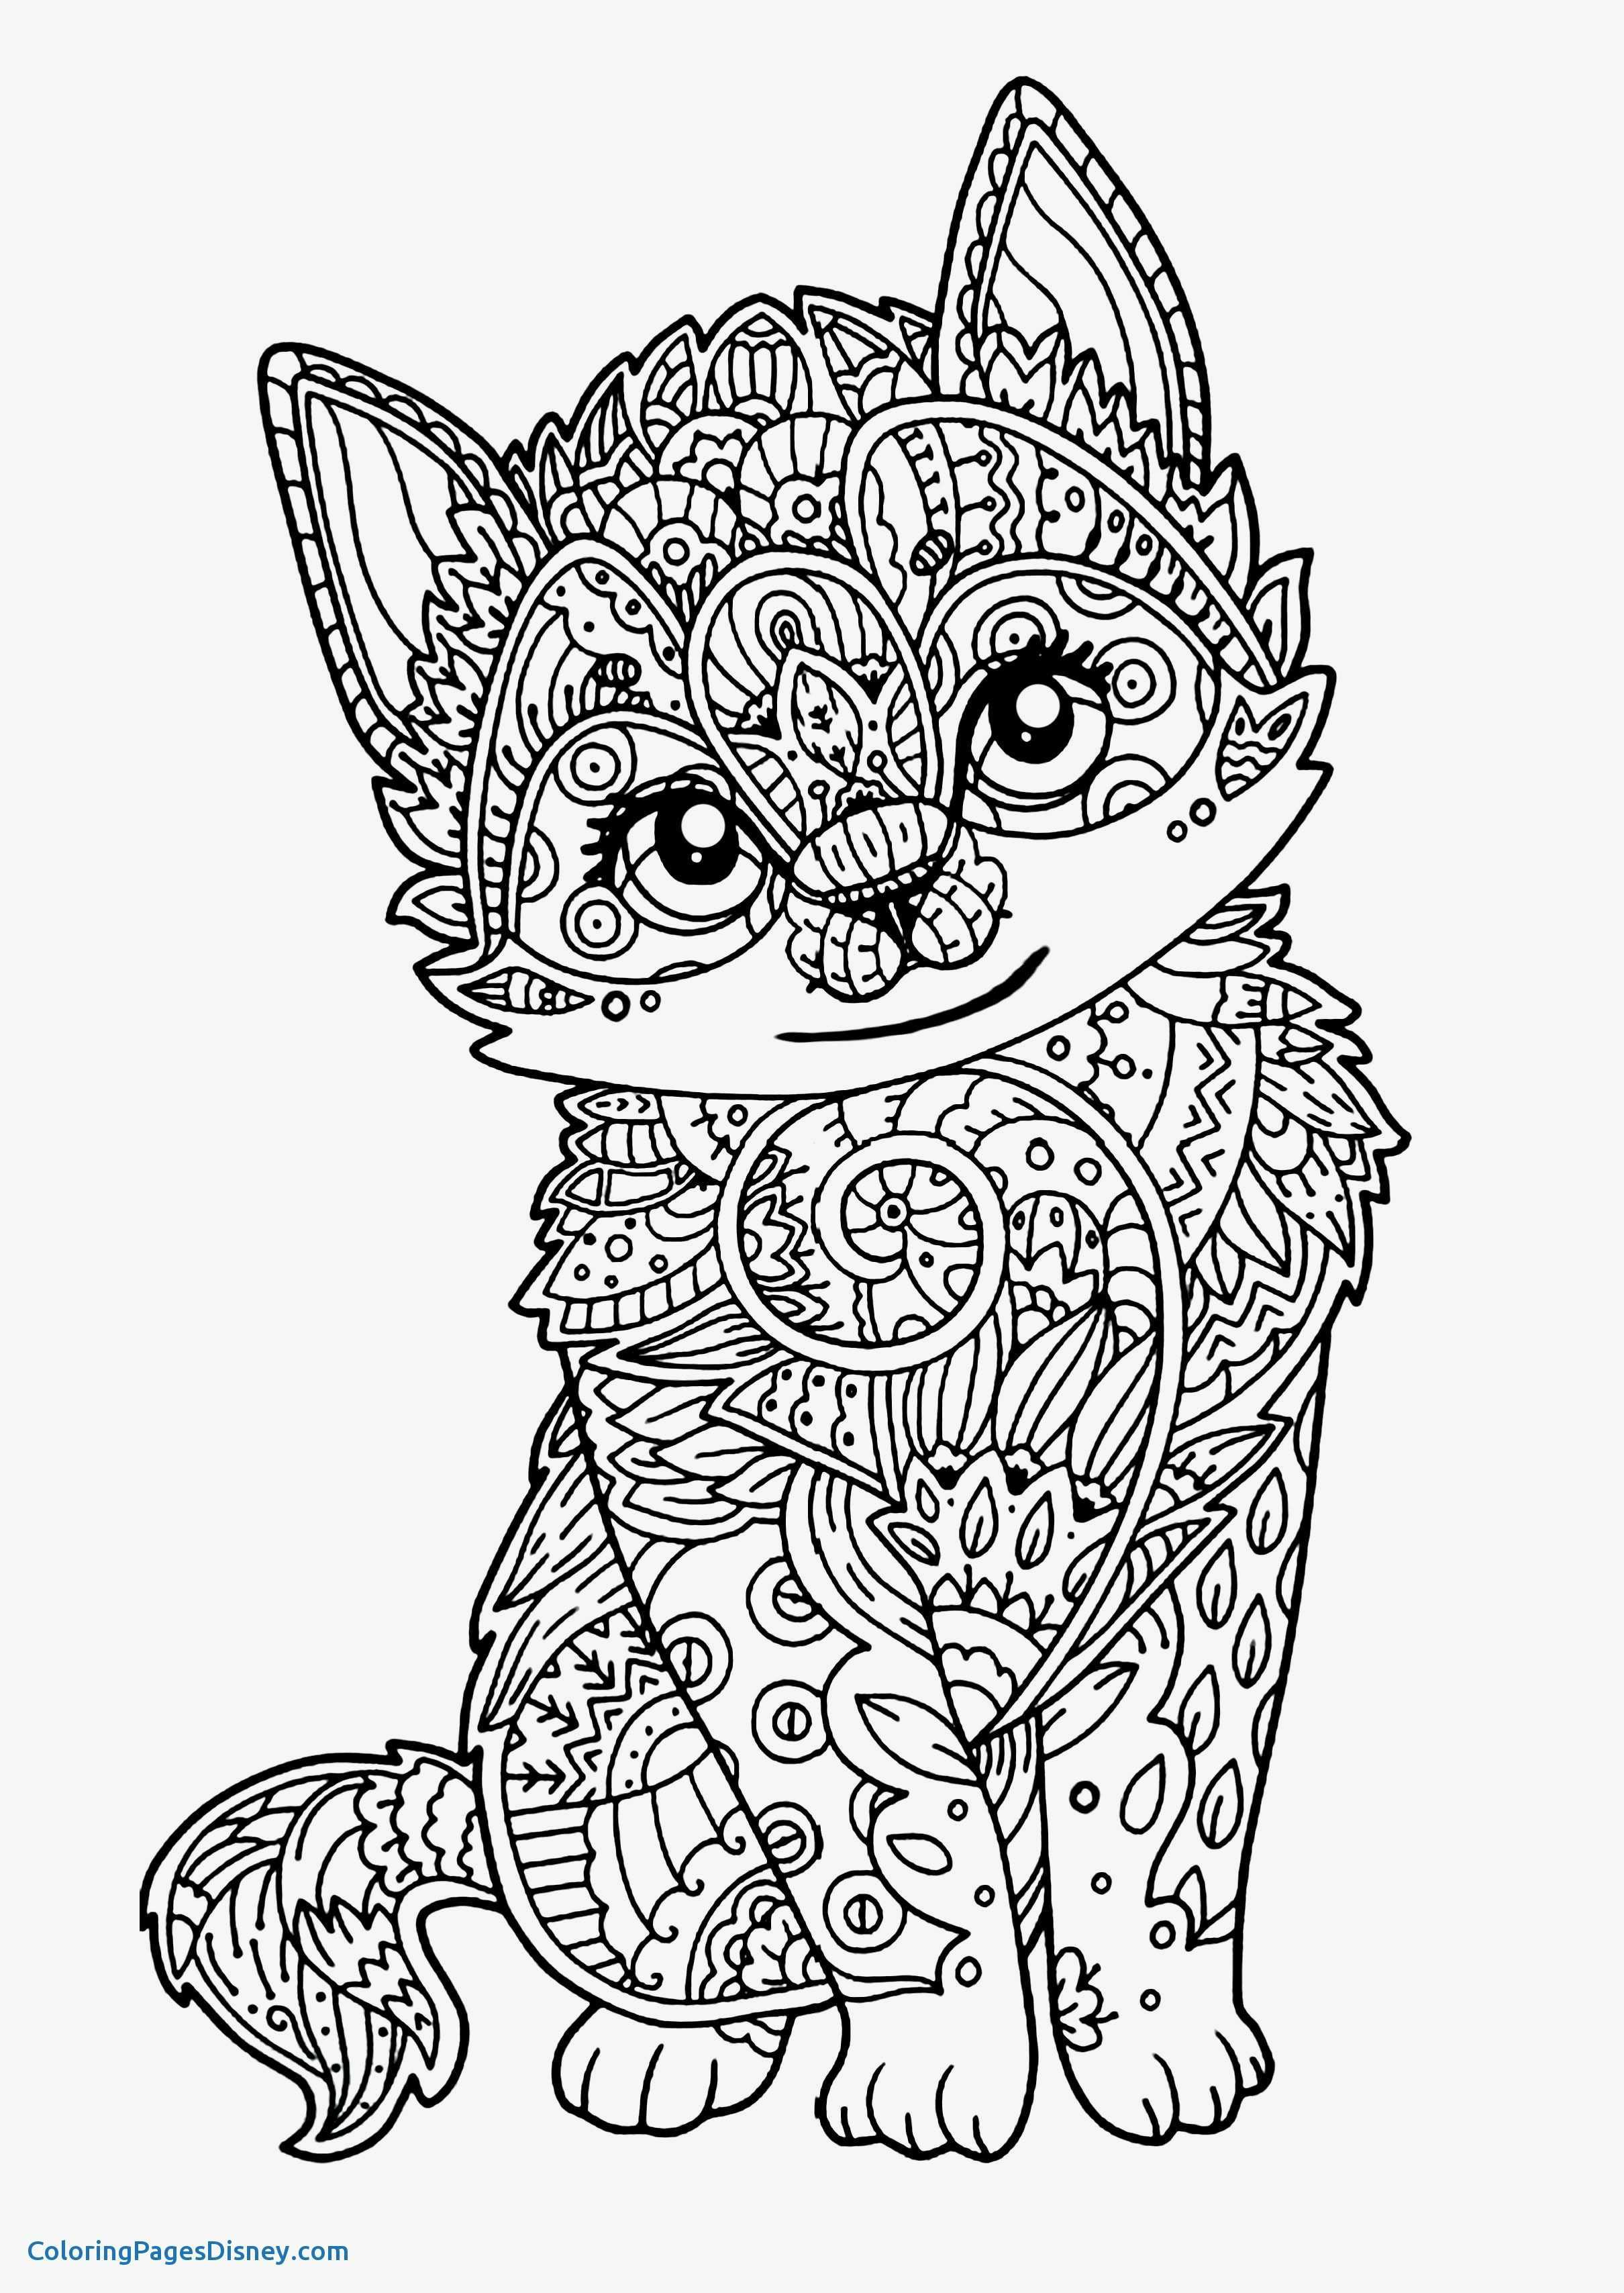 Kittens Coloring Pages Puppy And Kitten Coloring Pages Best Of Cool